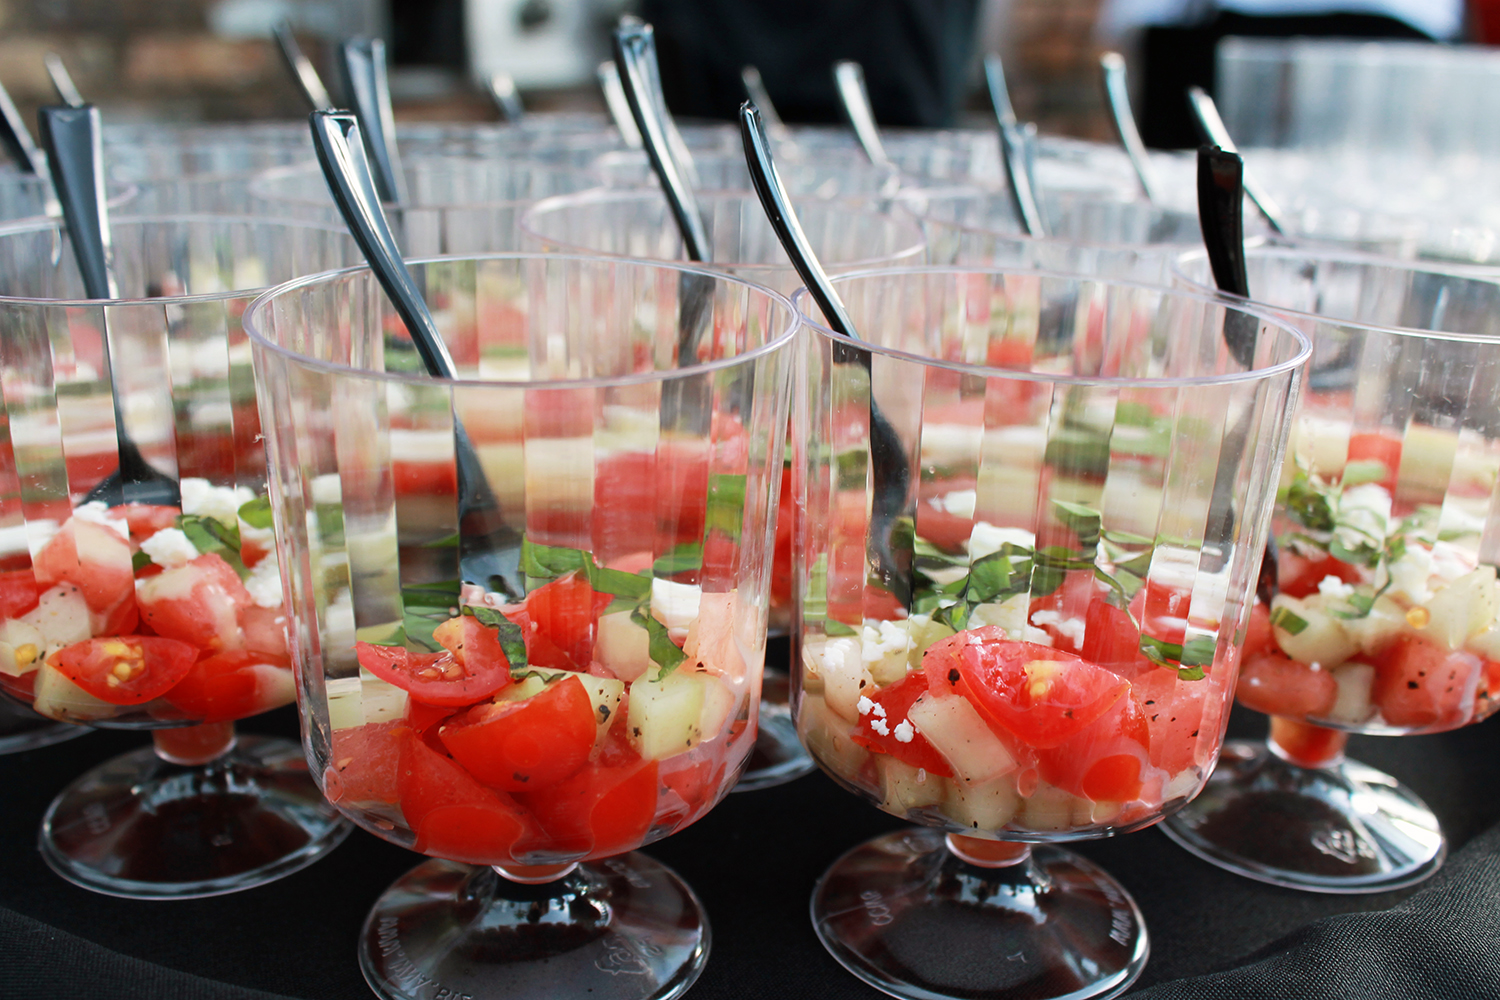 Tomato & Watermelon Cups